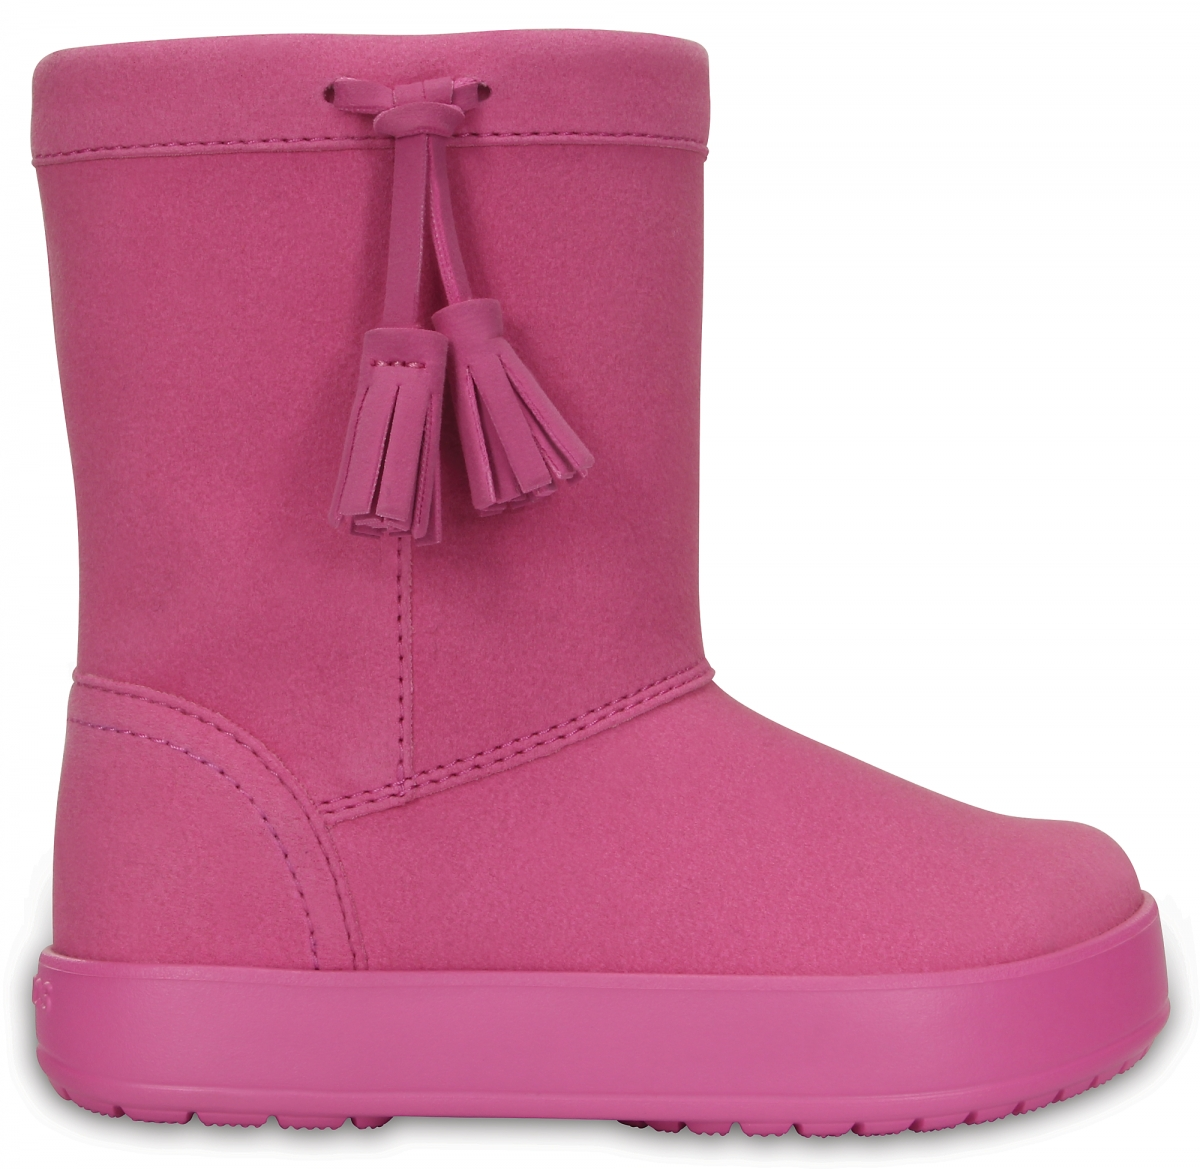 Crocs LodgePoint Boot Kids - Party Pink, C13 (30-31)